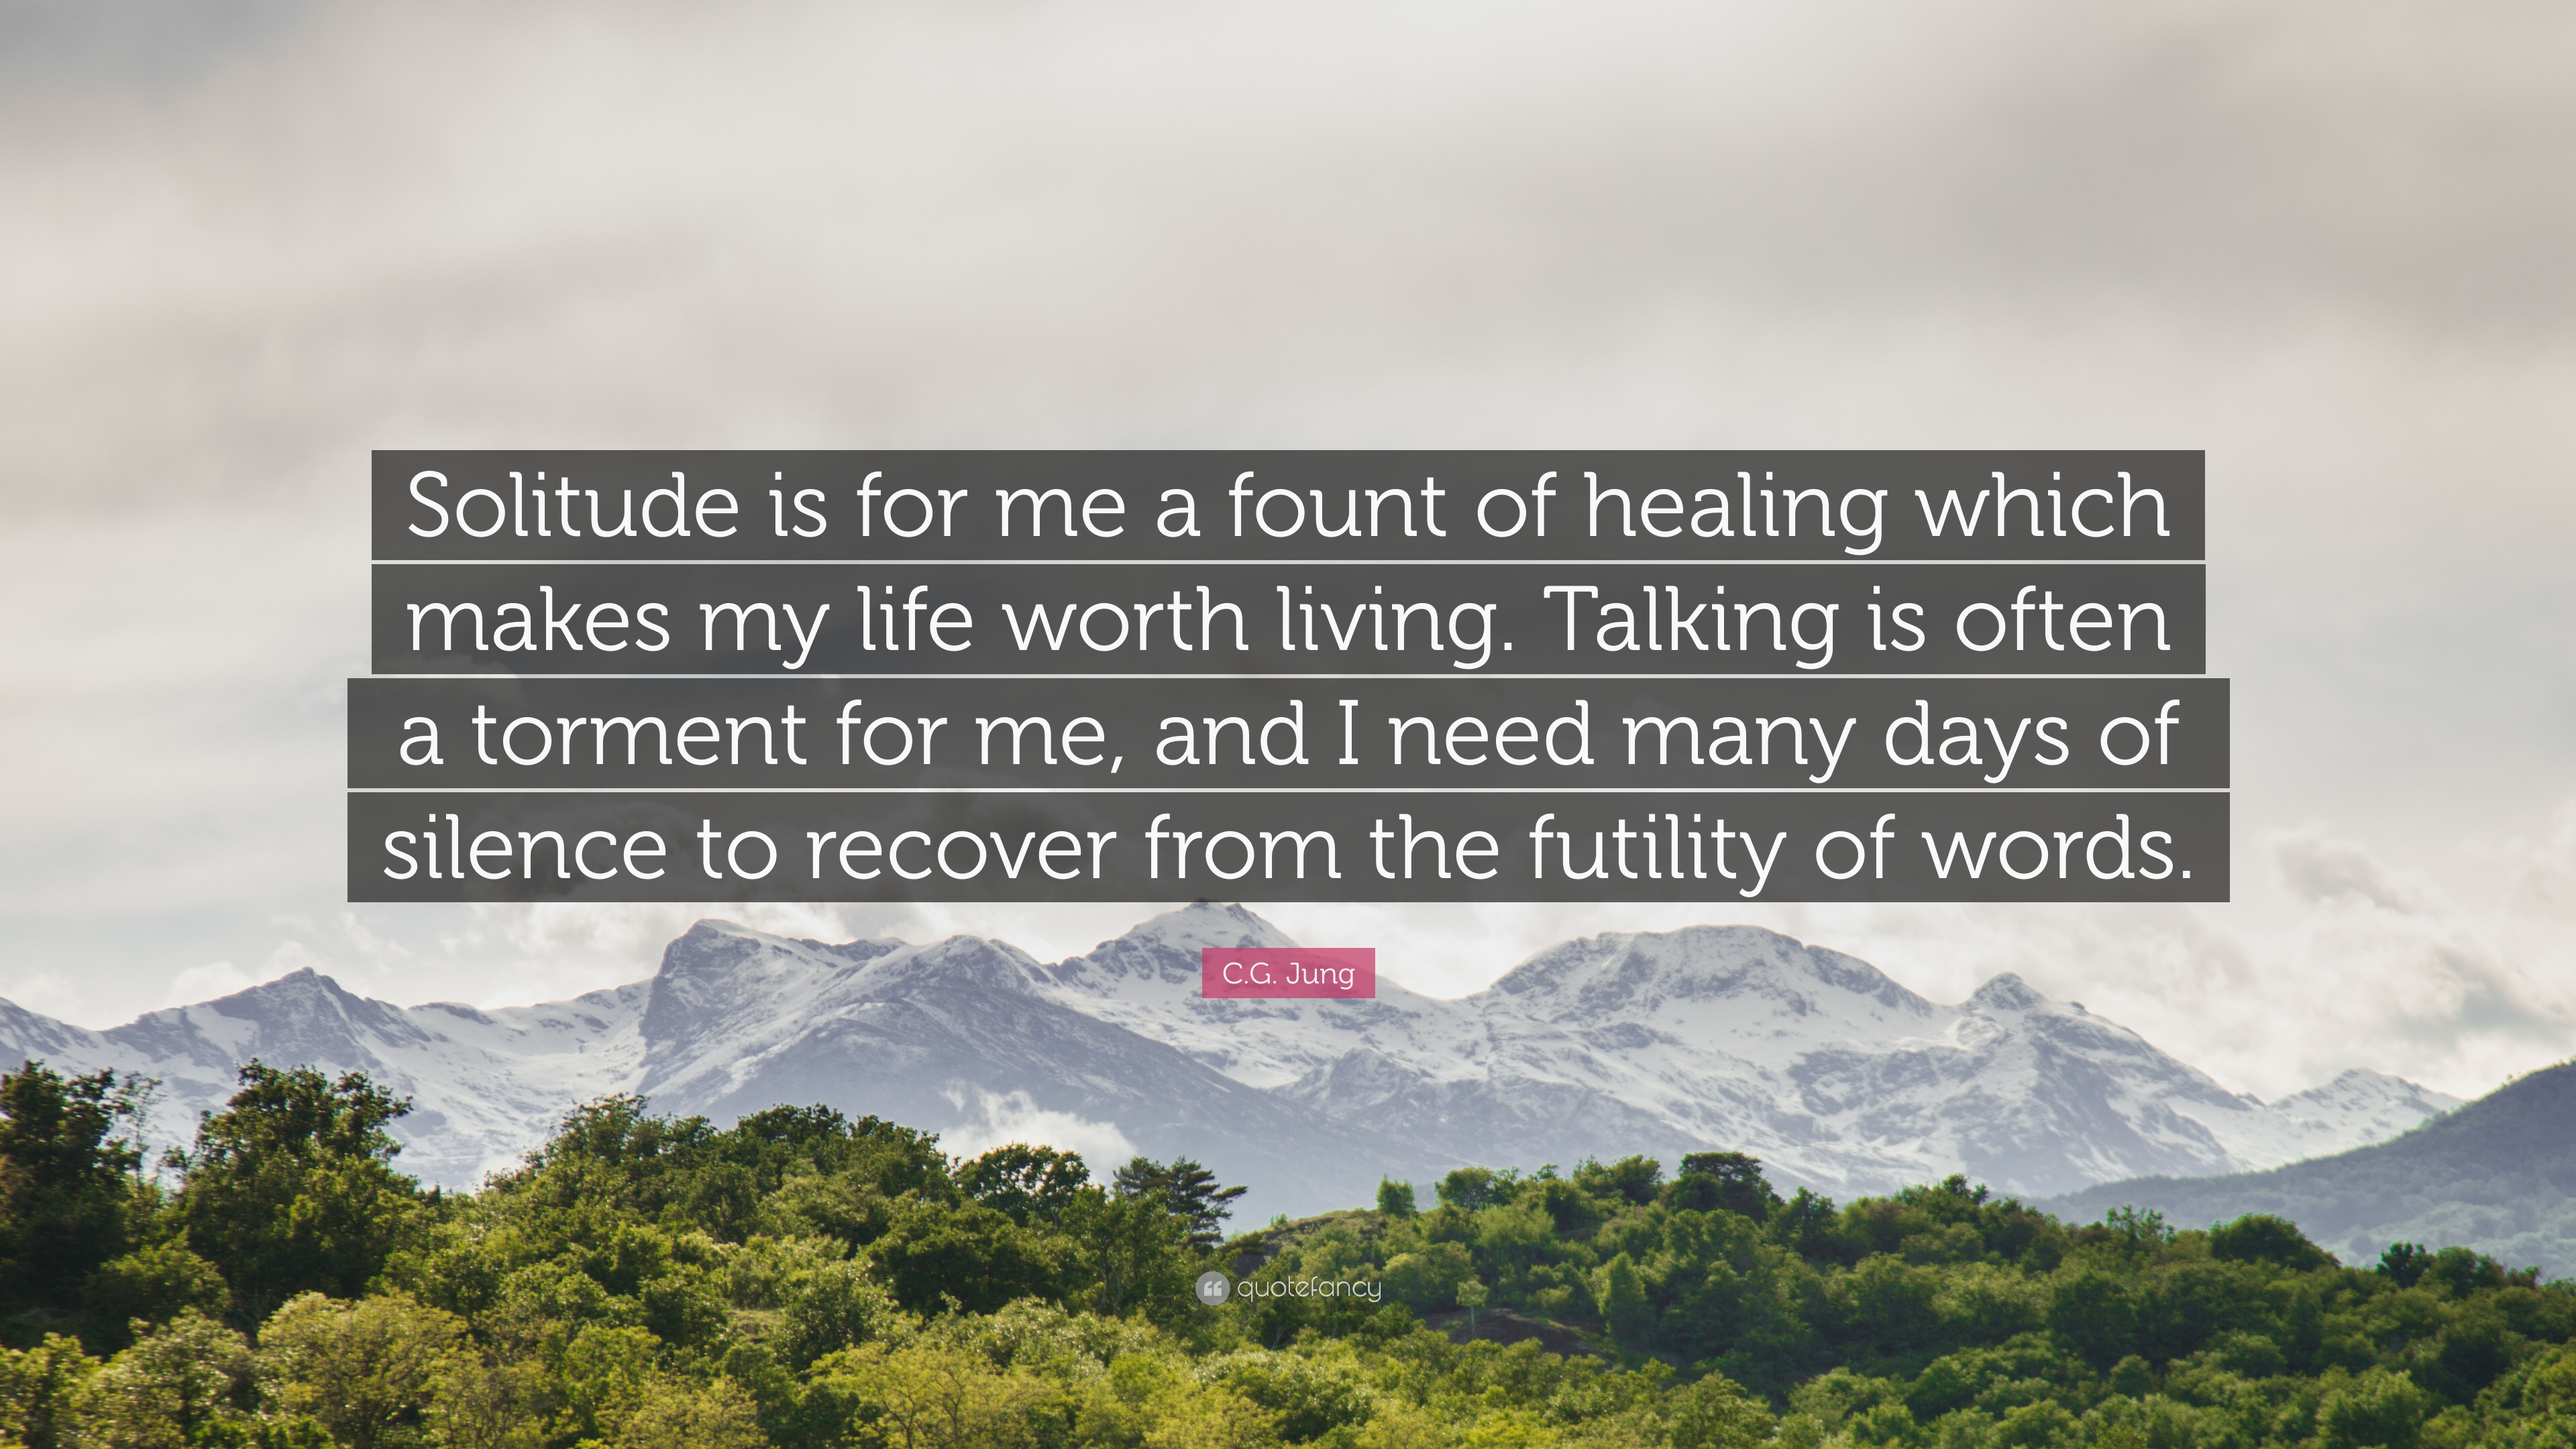 Cg Jung Quote Solitude Is For Me A Fount Of Healing Which Makes